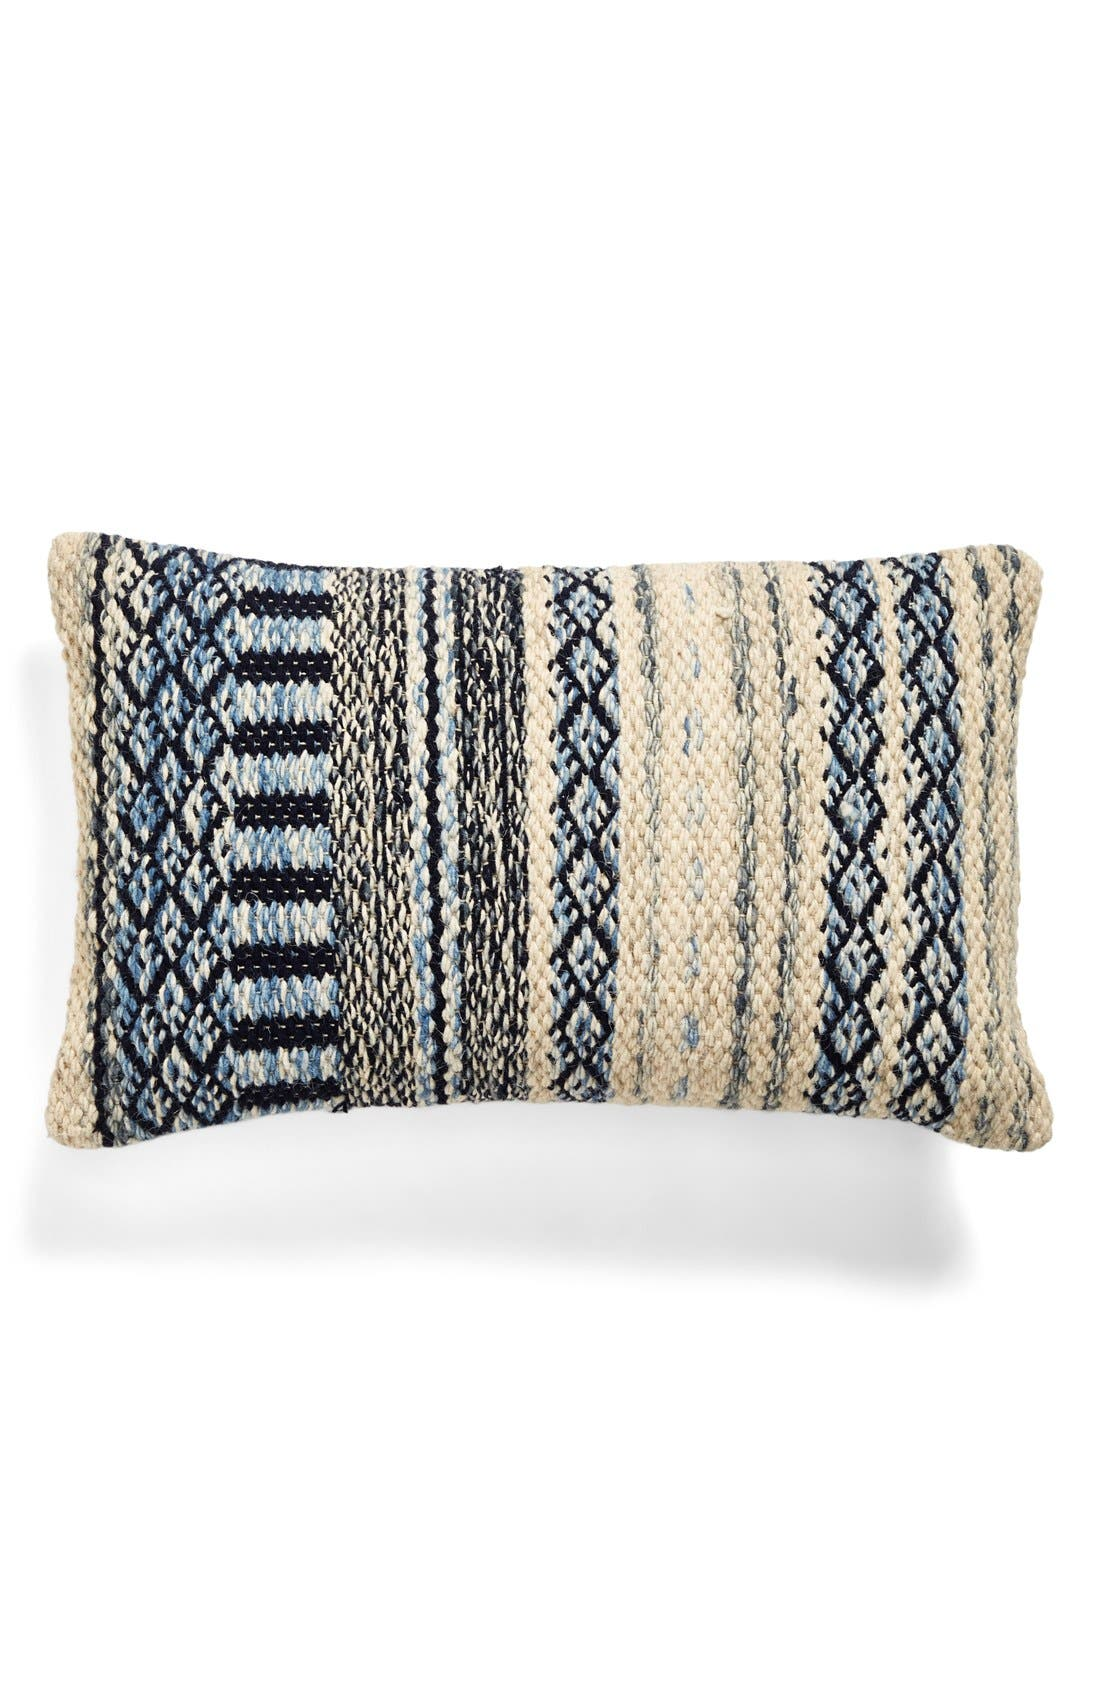 Alternate Image 1 Selected - Brentwood Originals 16 x 26 'Chindi' Woven Pillow